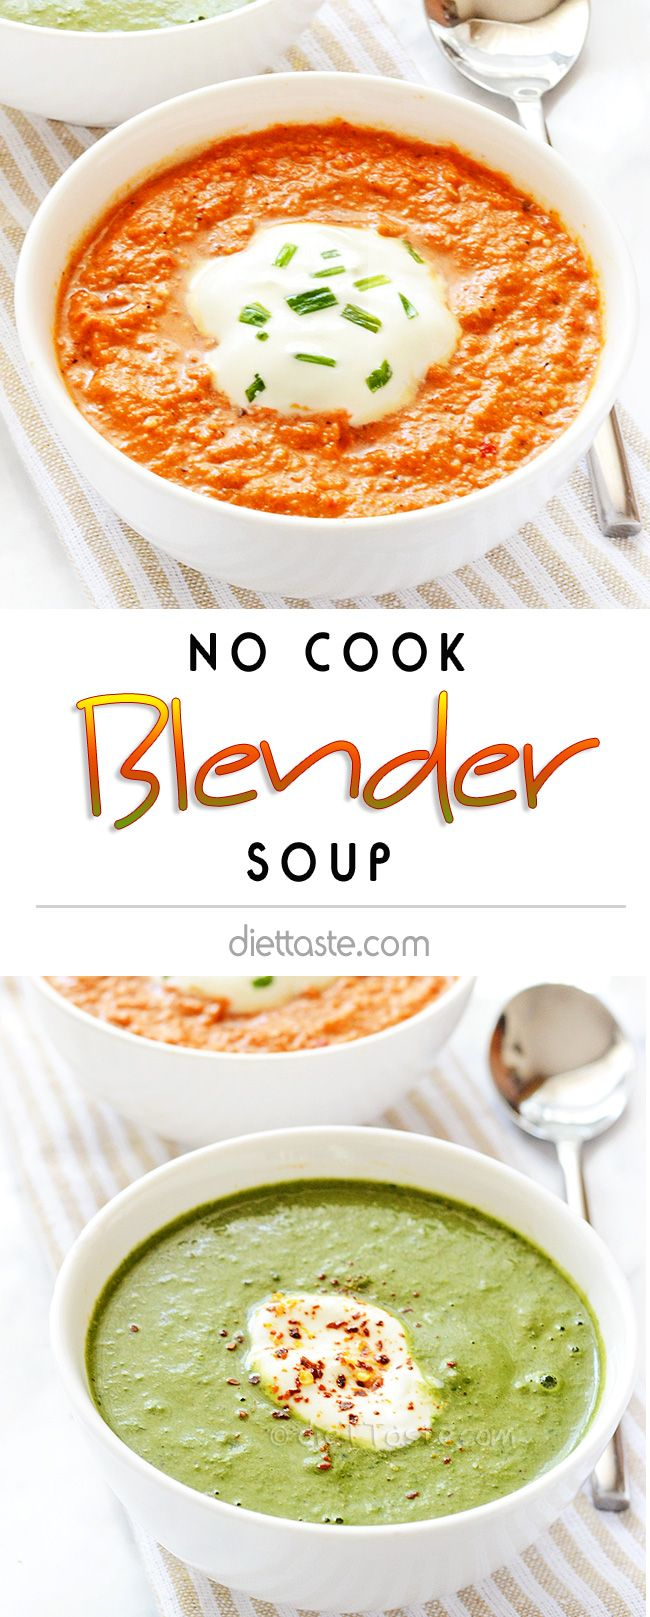 No Cook Blender Soup - nice way to eat more vegetables - simple and tasty - diettaste.com